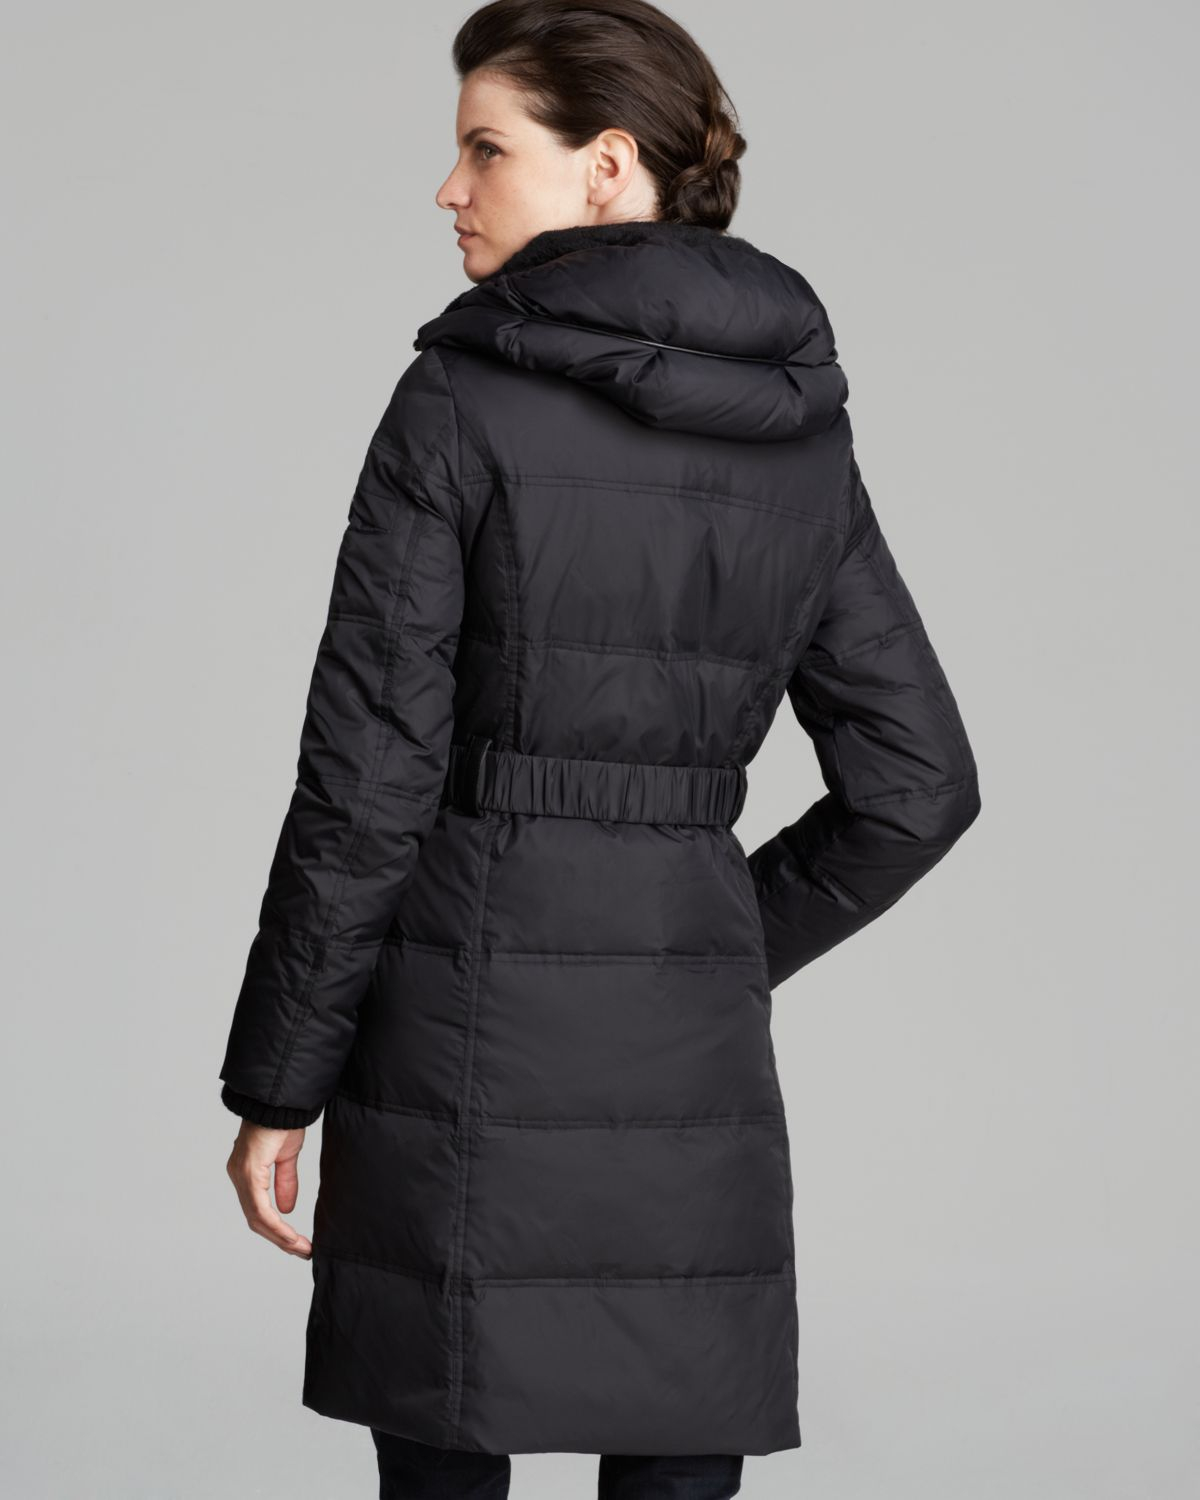 Dkny Down Coat - Faith Pillow Collar in Black | Lyst